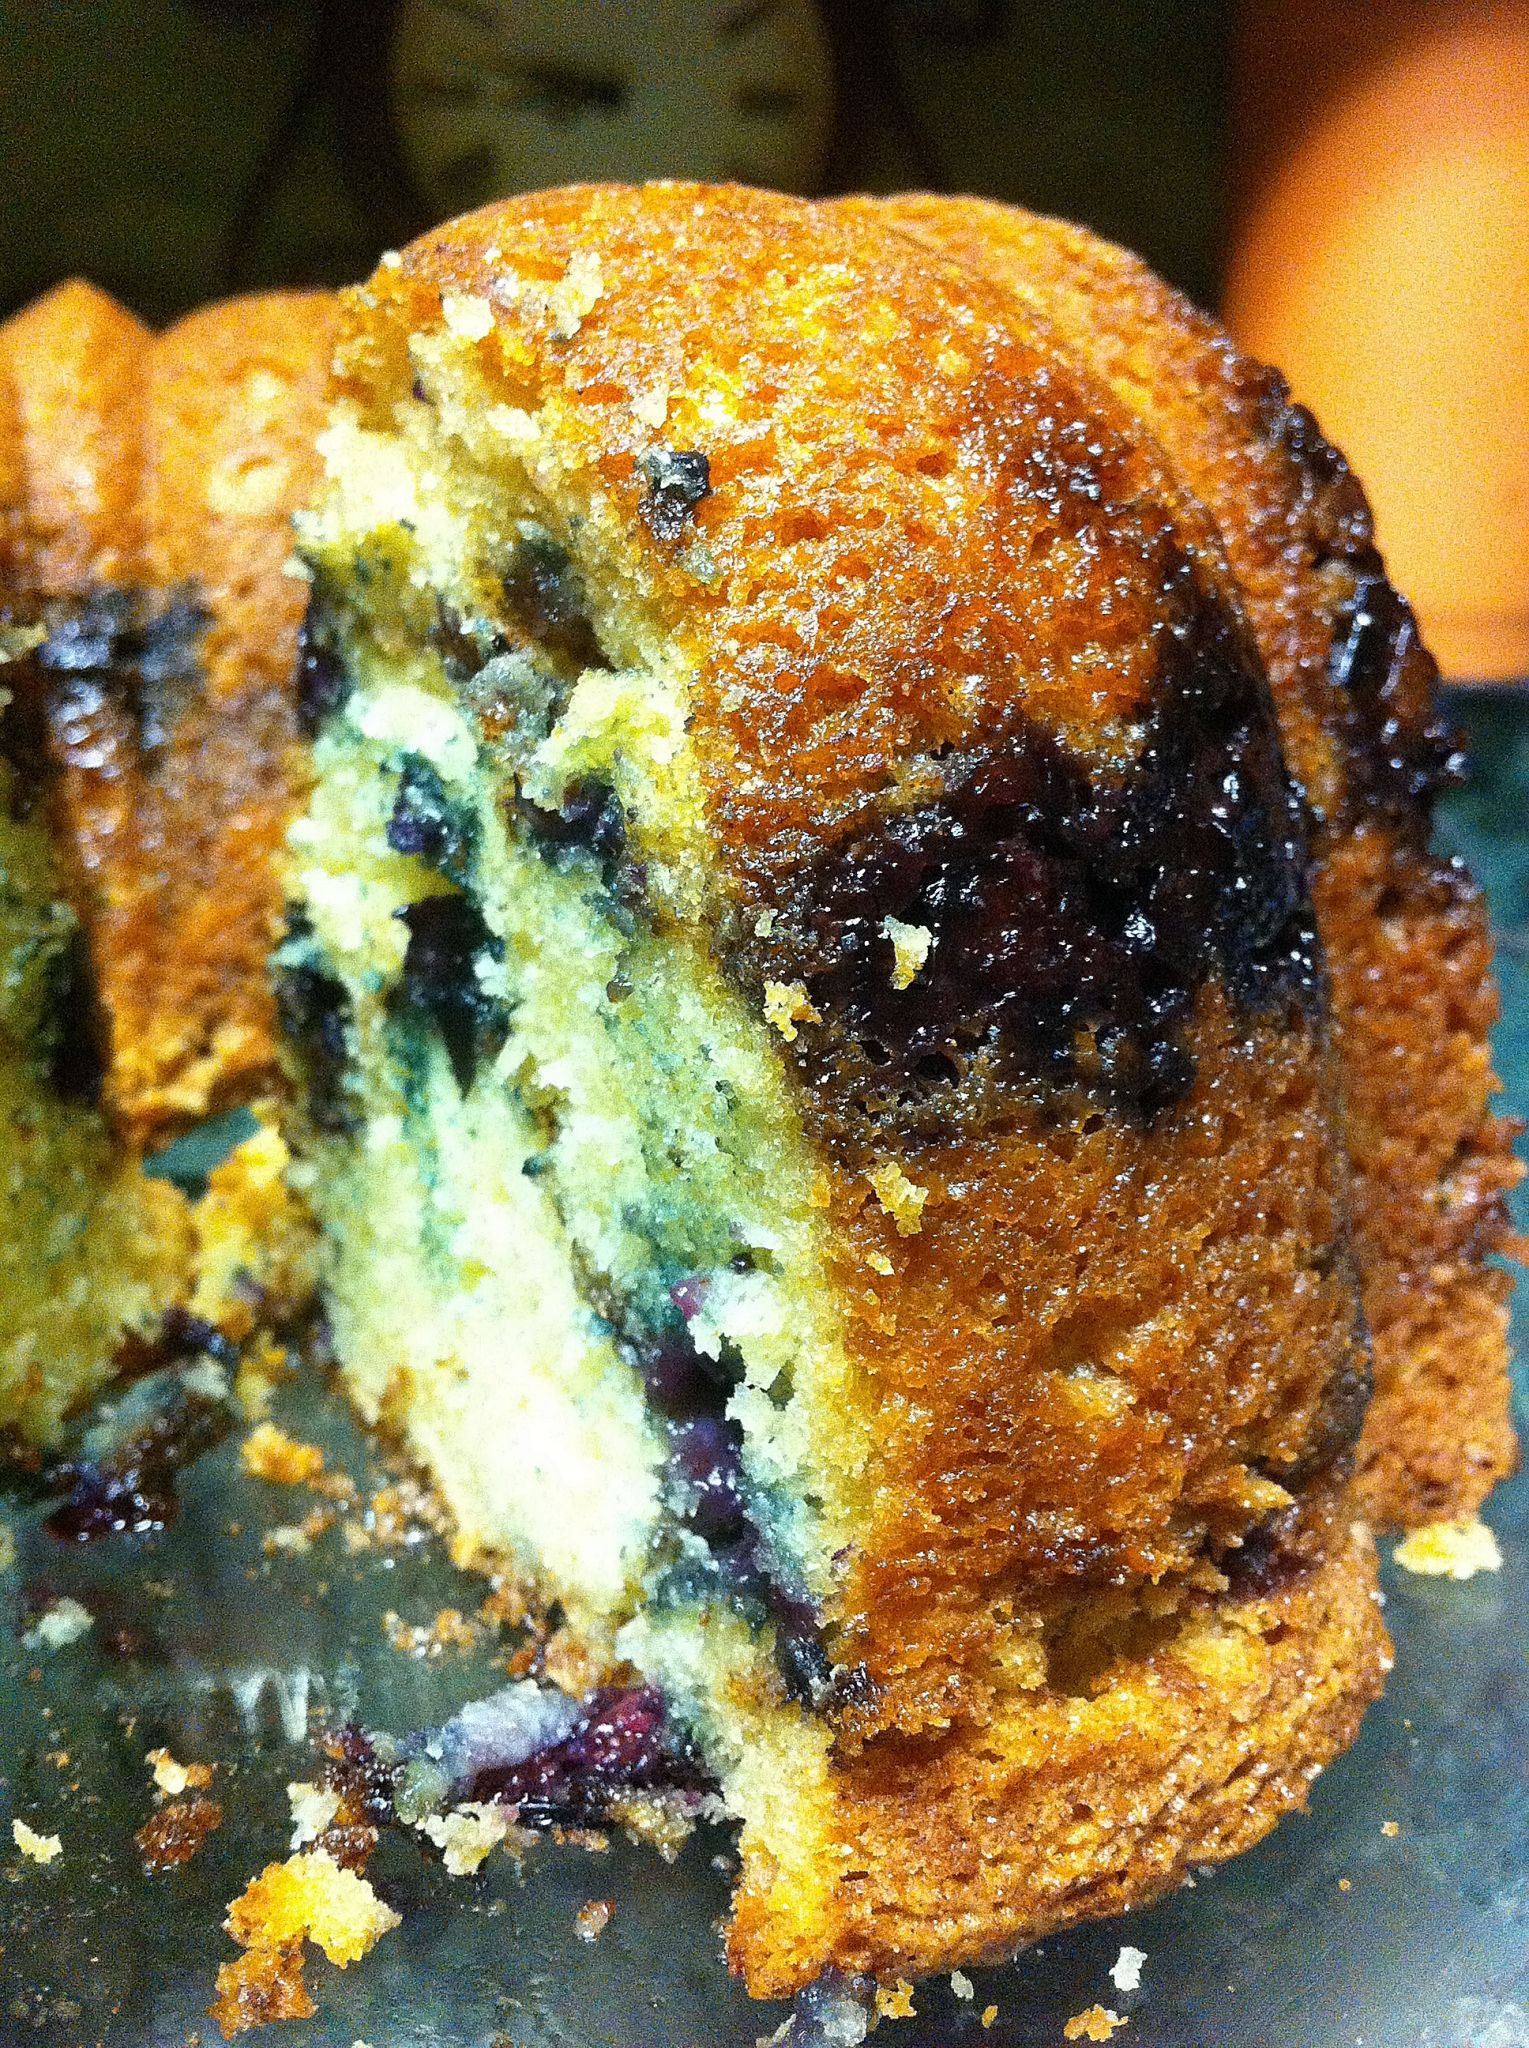 Blueberry sour cream coffee cake for the recipe http